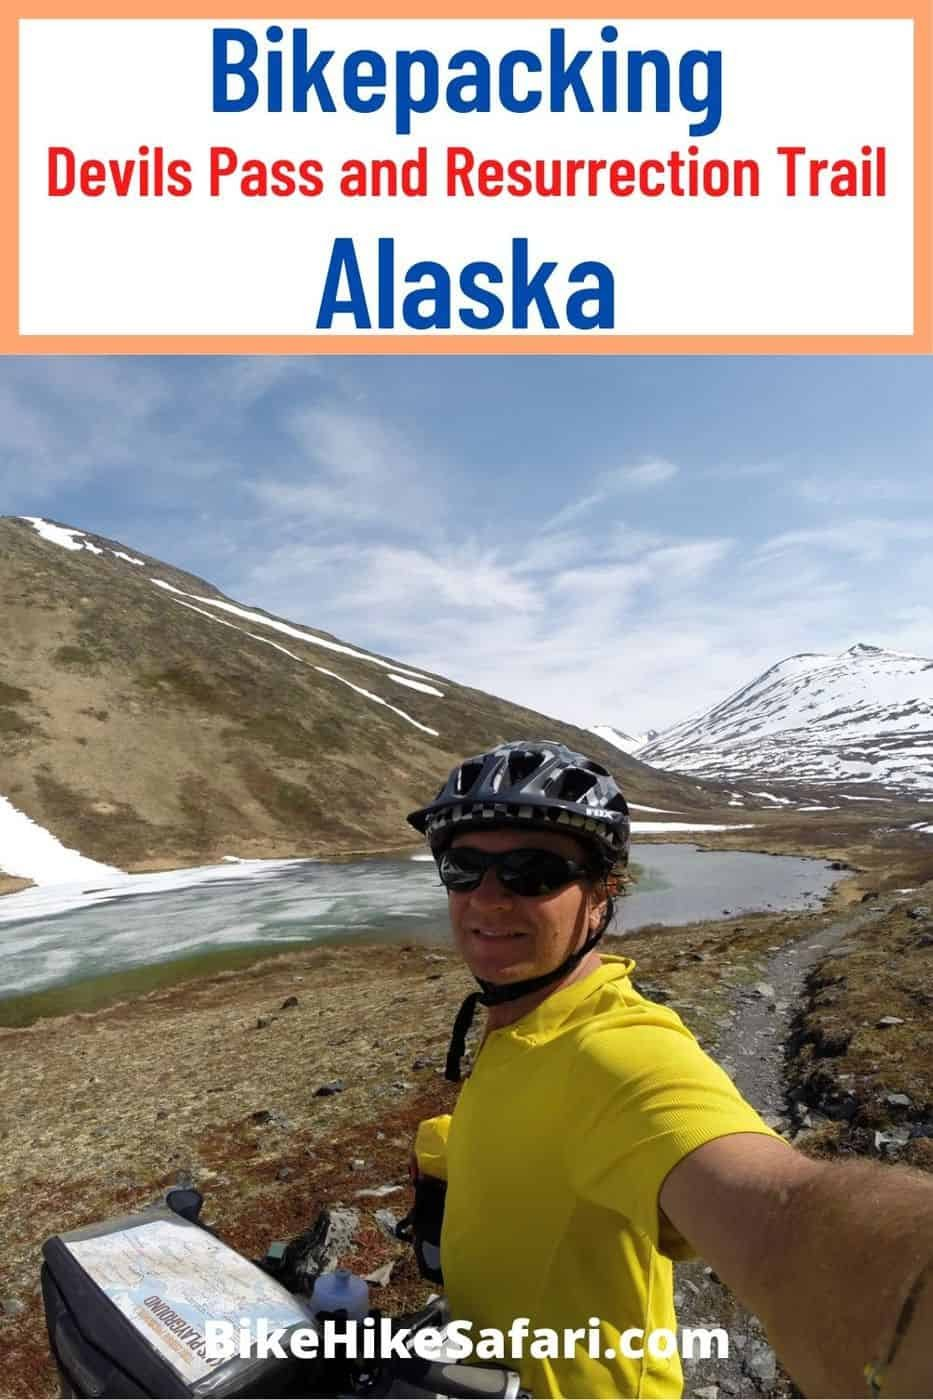 Bikepacking Devils Pass and Resurrection Trail Alaska. A Bikepacking Route Alaska in the mountains near the town of Hope on the Seward Penninsula. Quality Bikepacking and Bicycle Touring for cyclists.